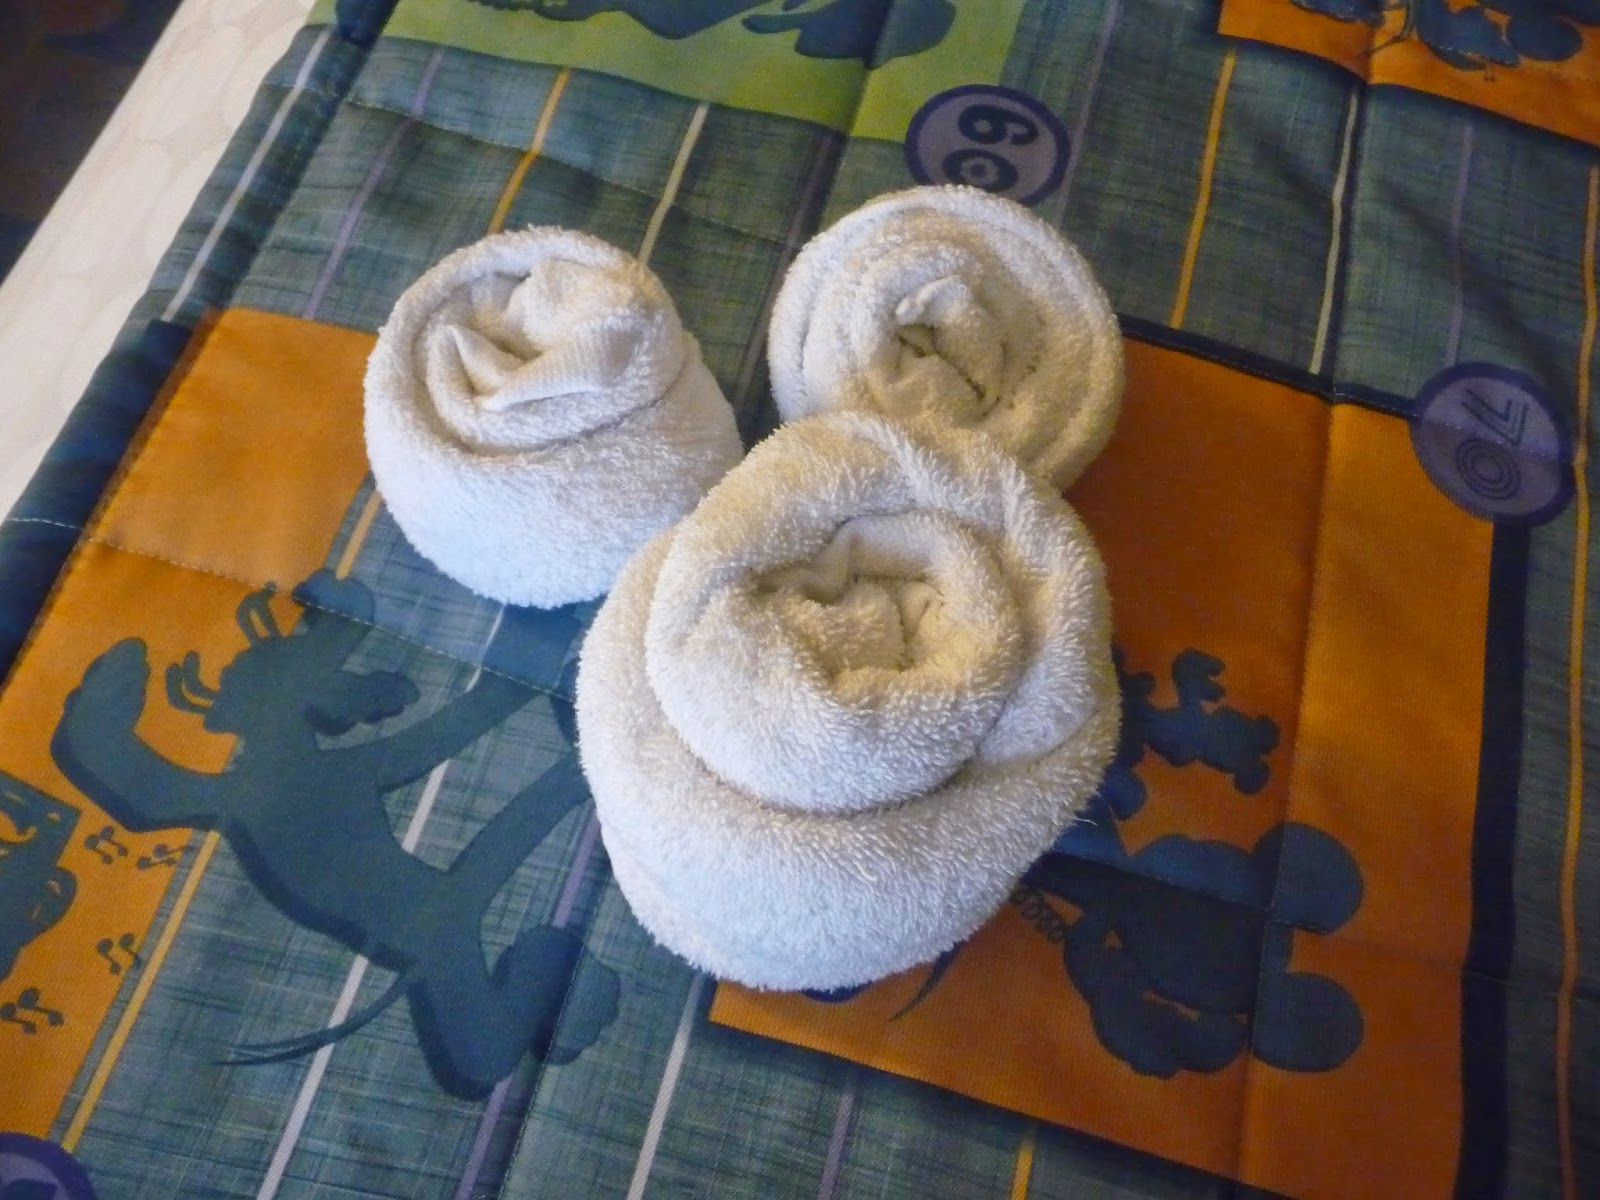 Staying on disney property gigglebox tells it like it is - Seven mistakes we make when using towels ...